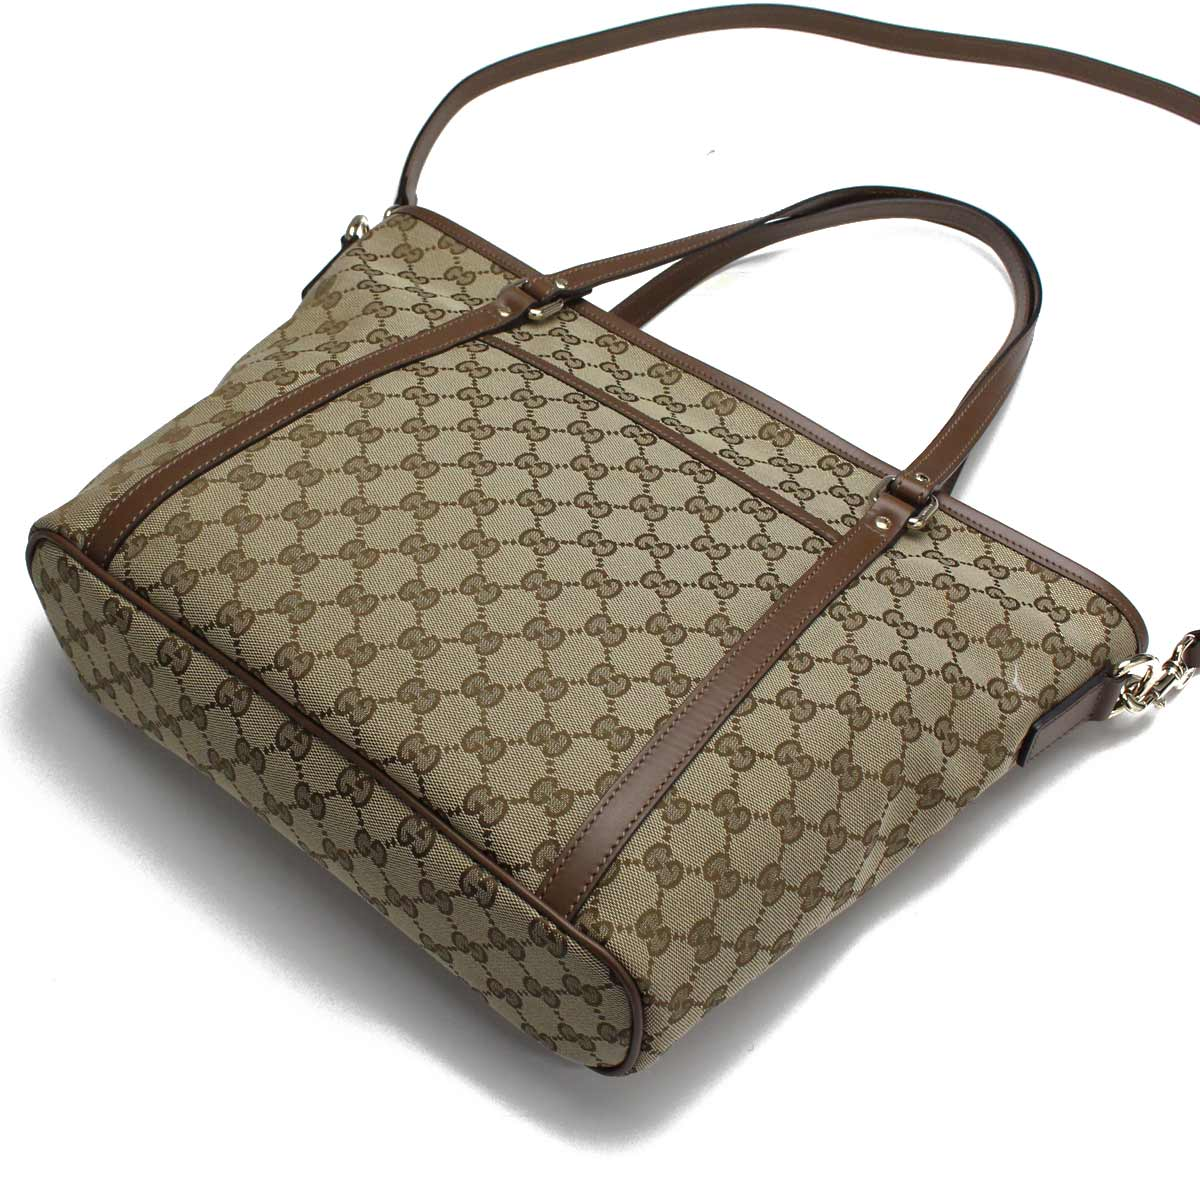 04c607012331 Bighit The total brand wholesale: Gucci GUCCI GG canvas 2way tote ...